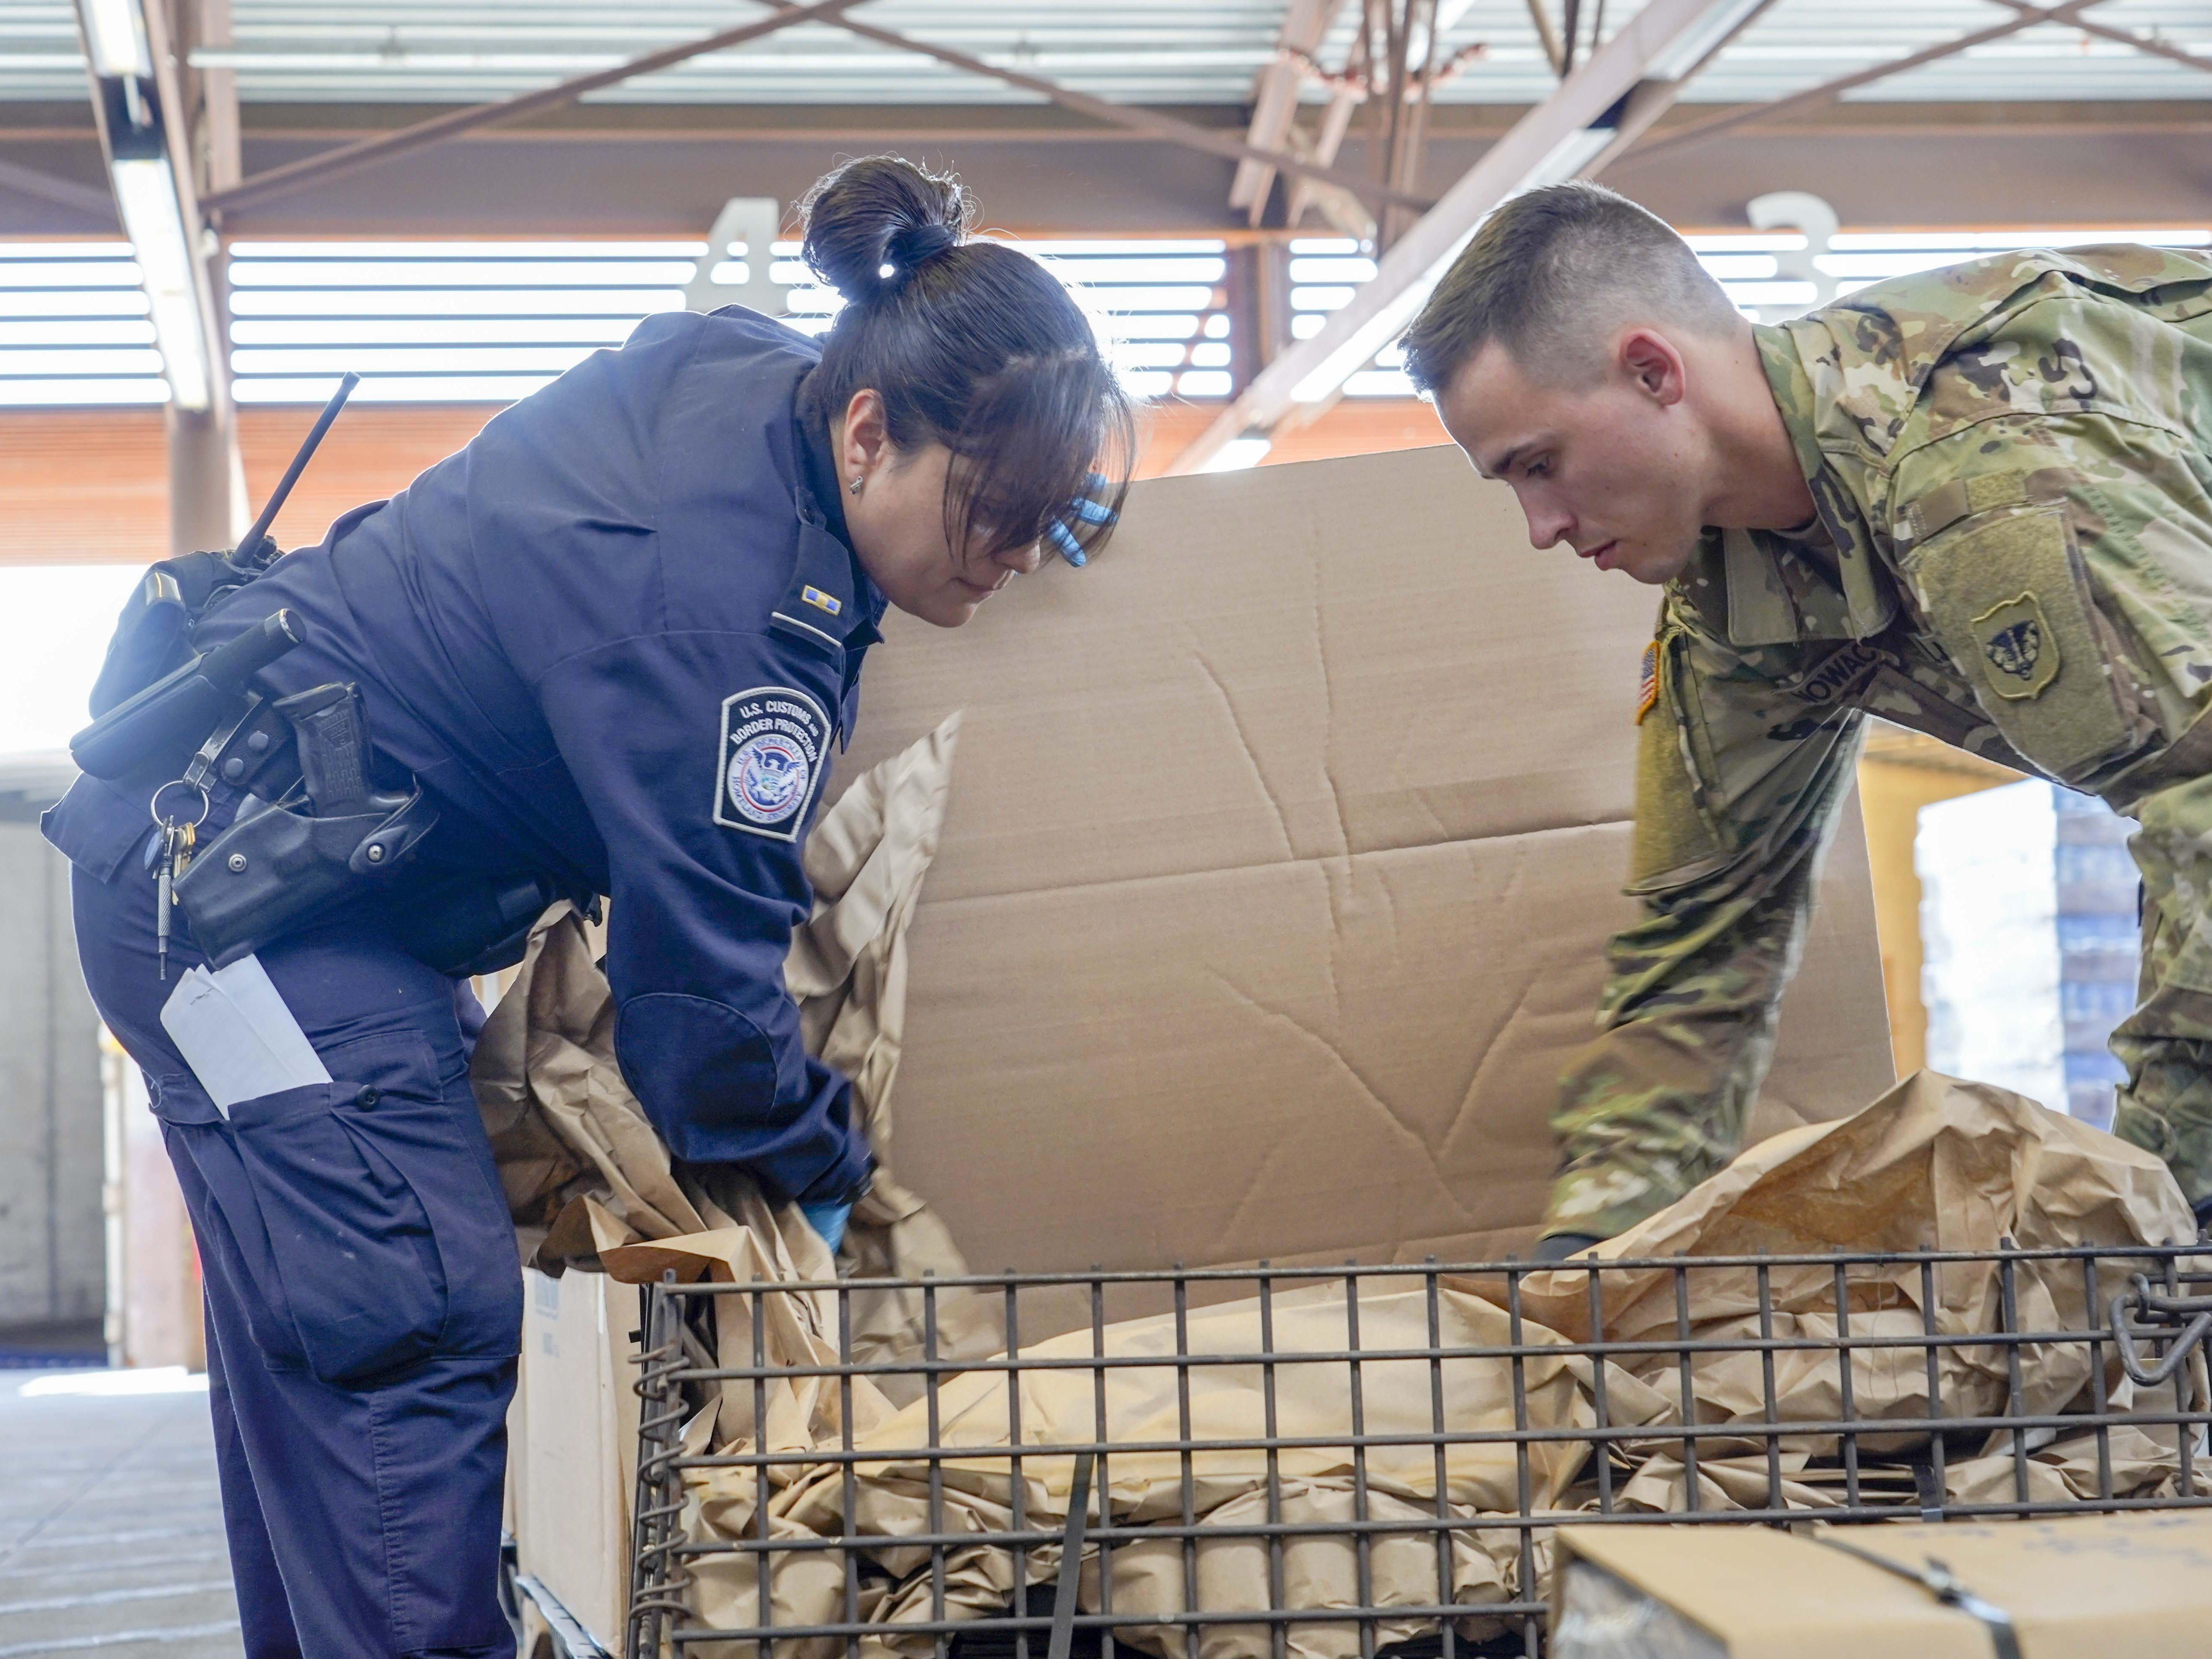 Customs and Border Protection Officer Vanessa Brower and National Guard Spc. Nowack Bradley check cargo during the routine inspection Aug. 1, 2018, at the Port of Nogales (Mariposa Crossing) in Nogales, Arizona.